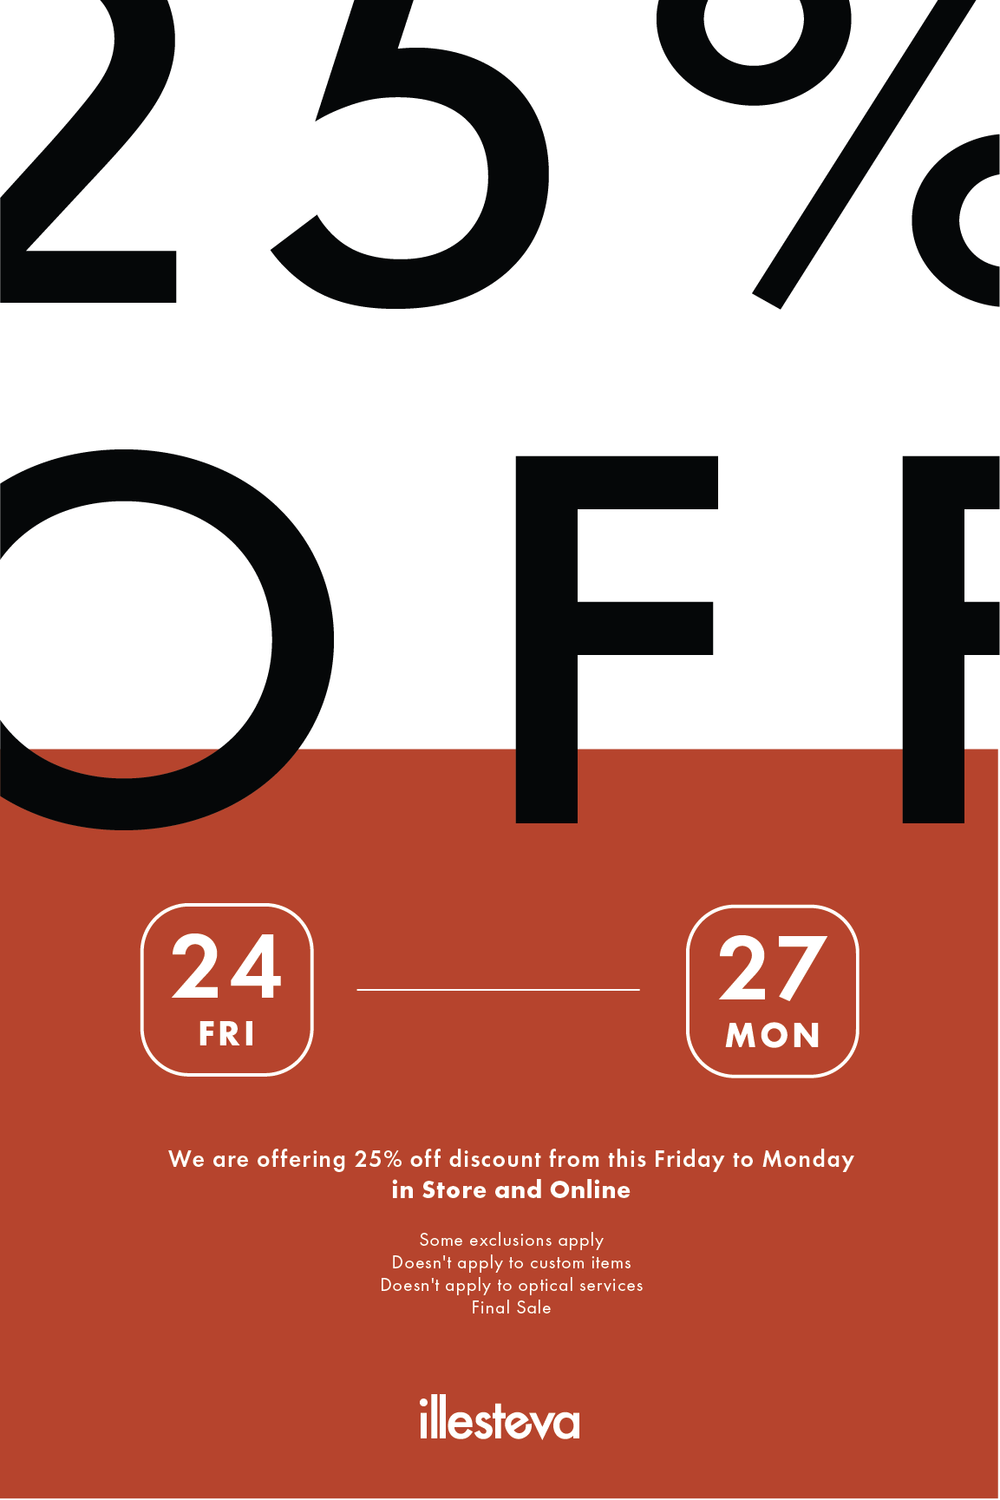 Black Friday sale - Rejected Email Blast Poster